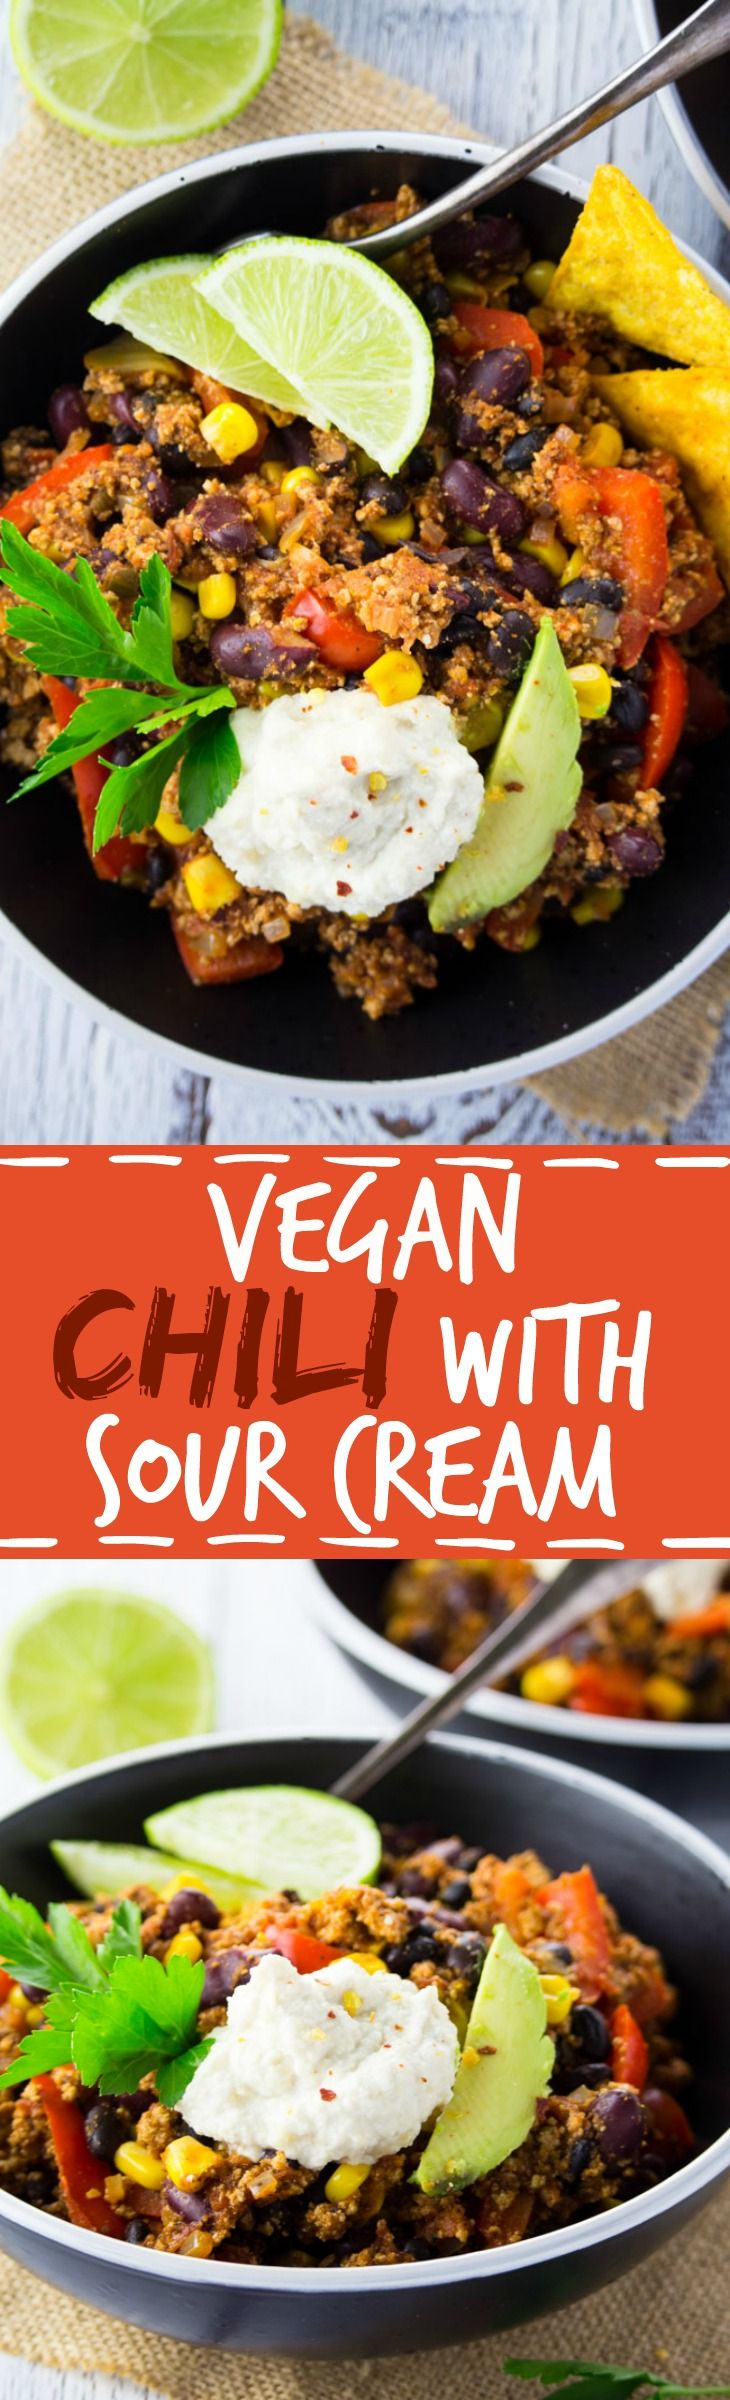 You definitely won't miss the meat in this easy vegan tofu chili with cashew sour cream! Super delicious and packed with protein!